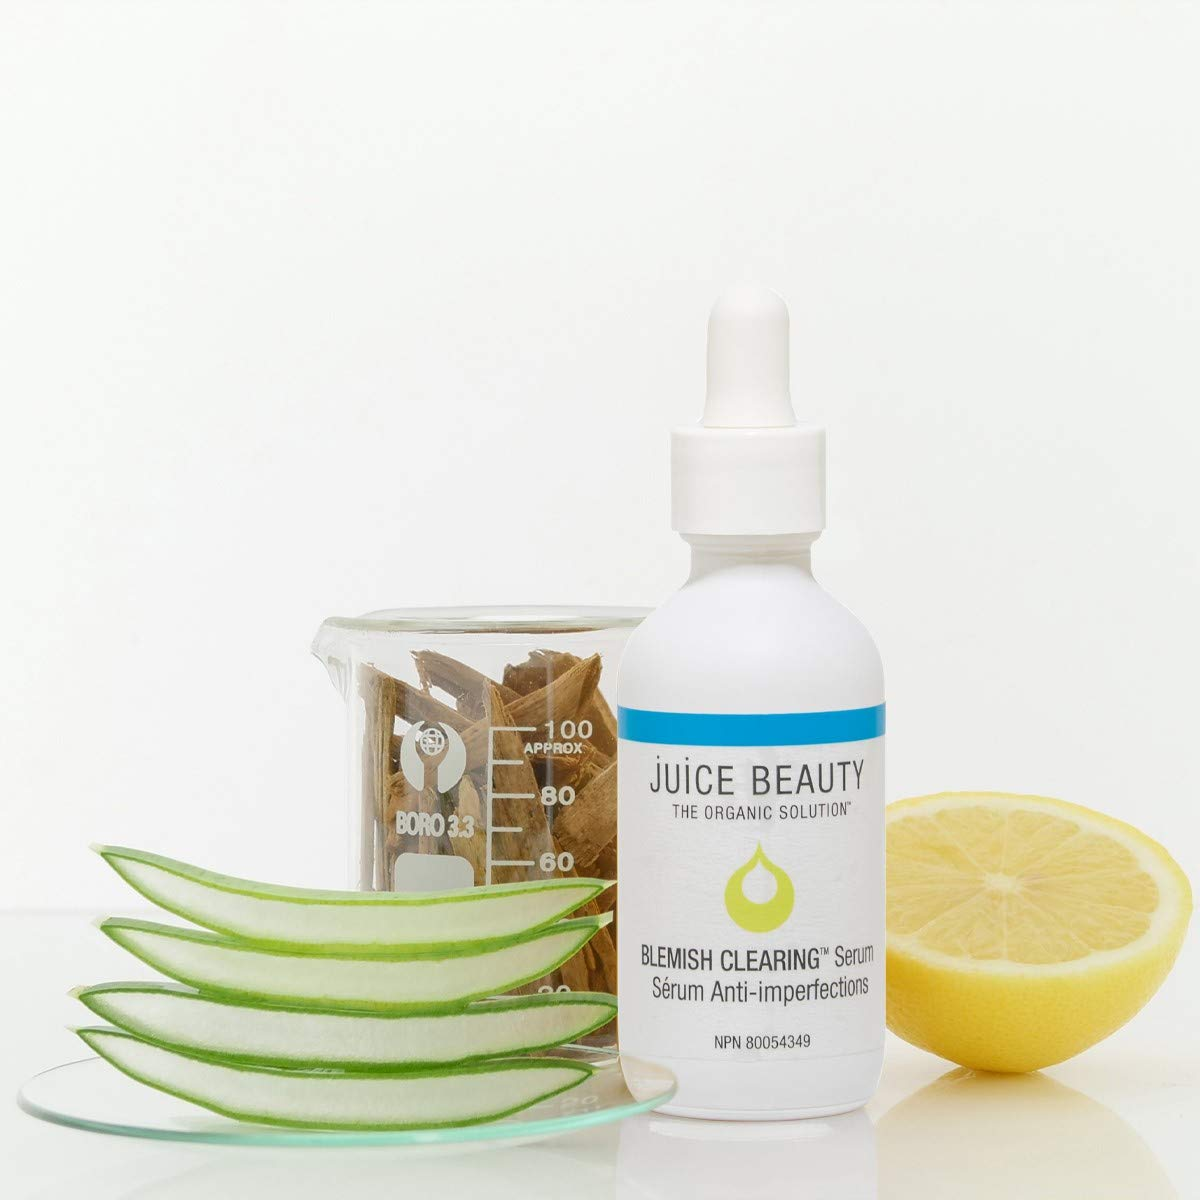 acne treatment reviews consumer reports